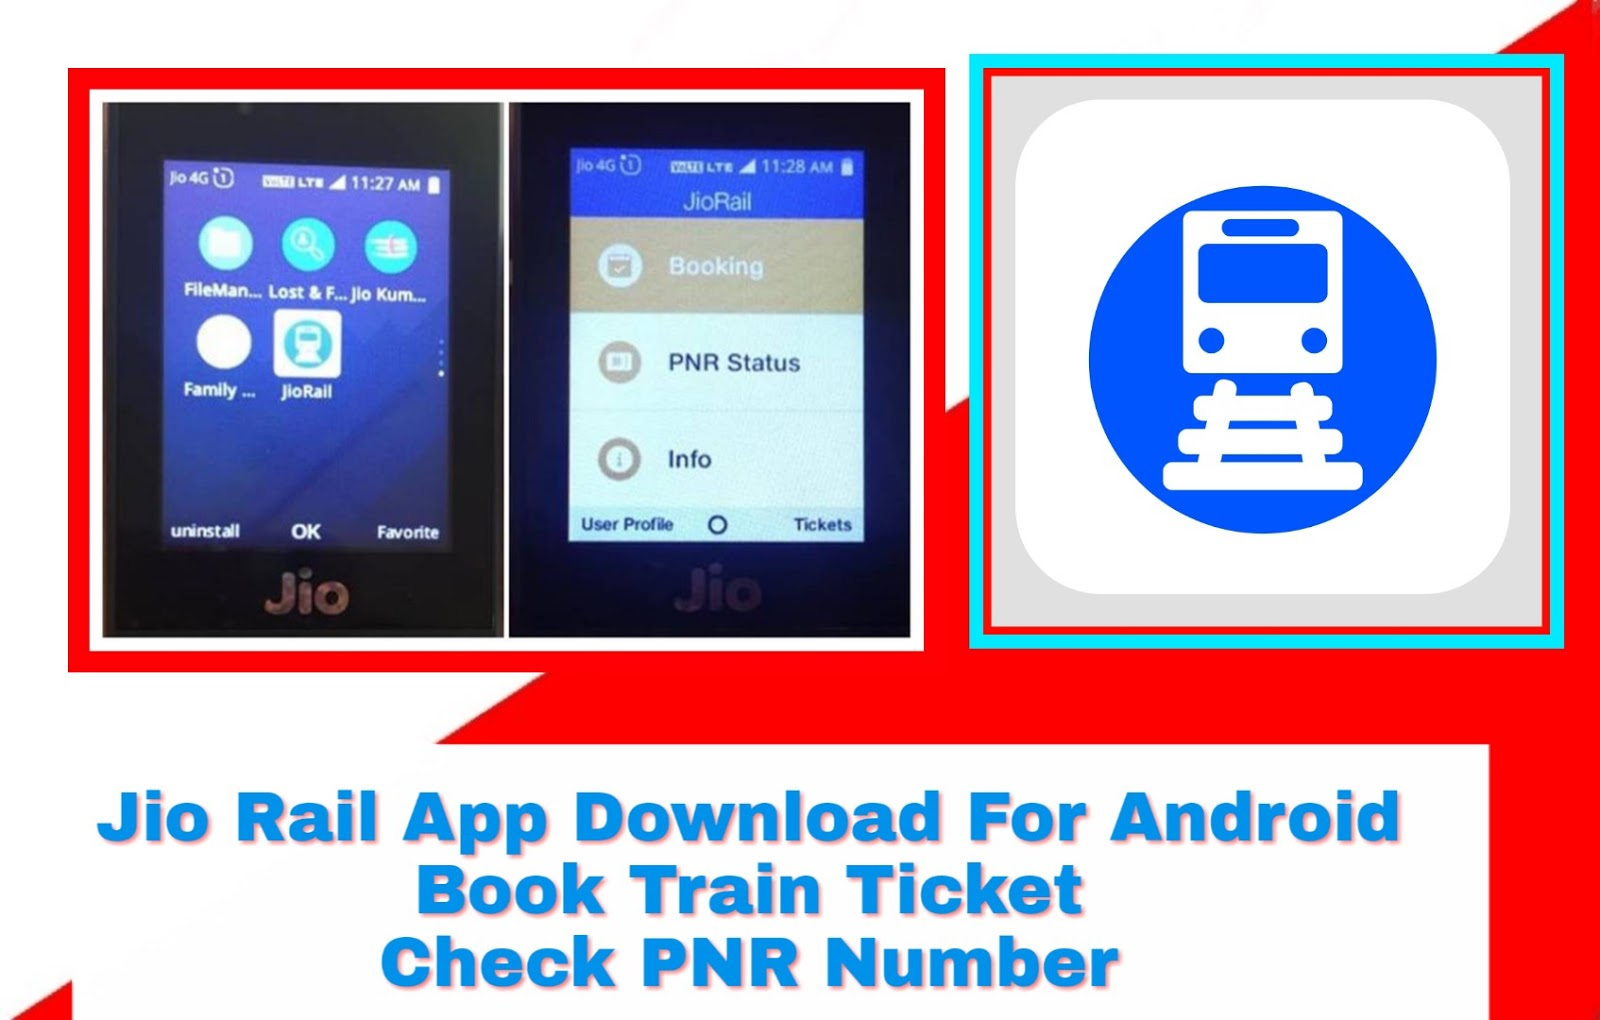 Railway Apps|Jio Rail App Download For Android|Book Train Ticket